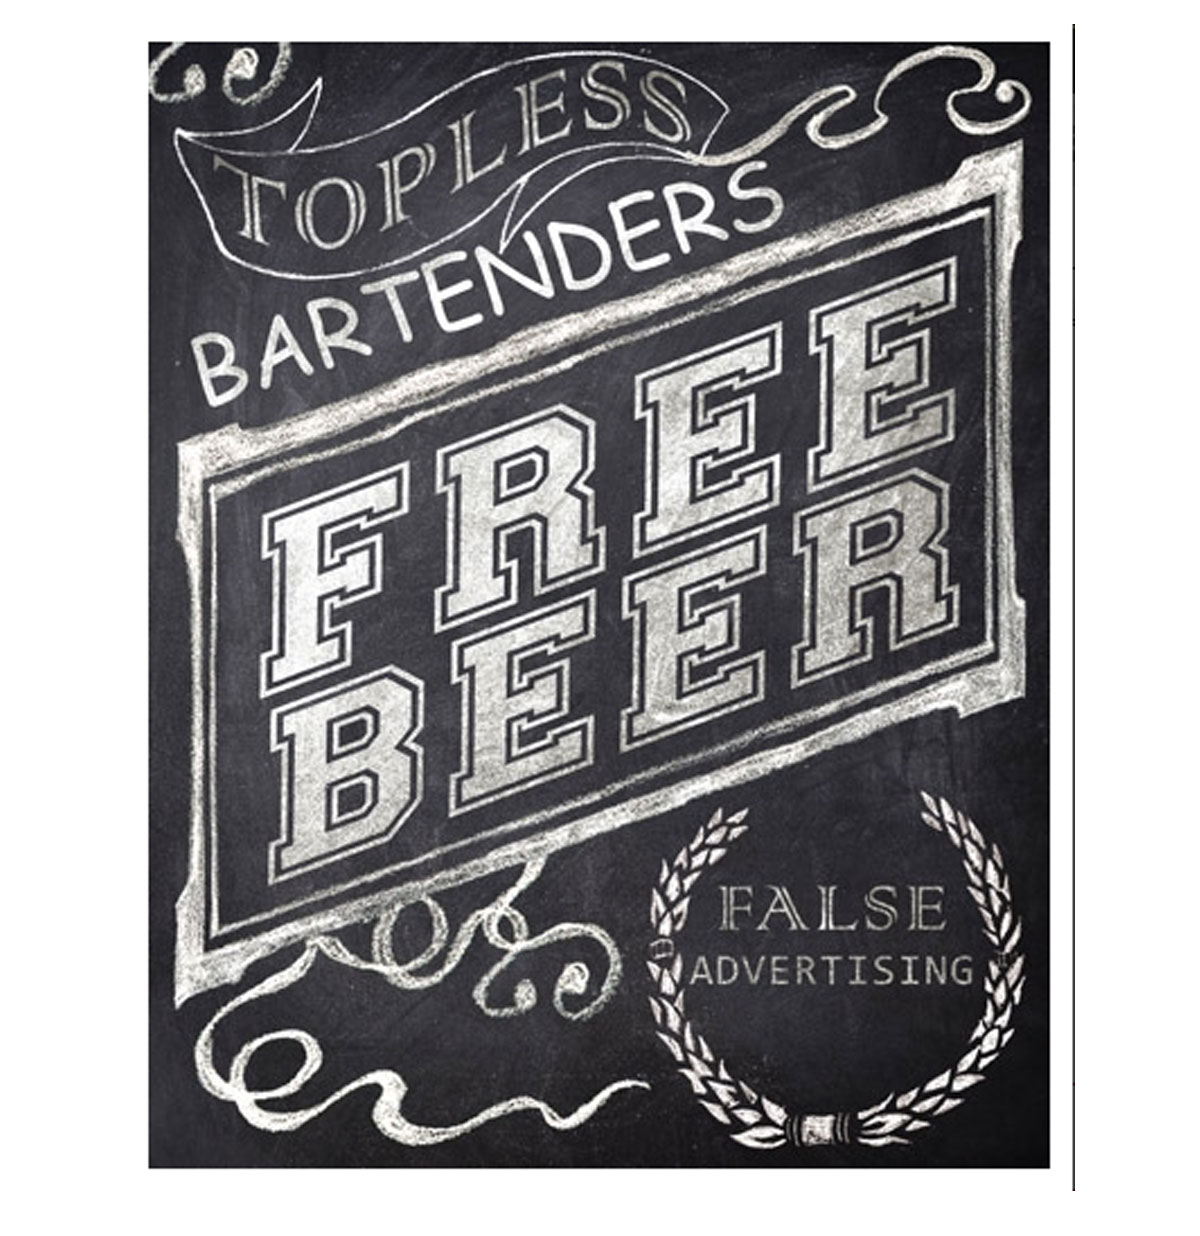 Topless Bartenders, Free Beer, False Advertising Metal Sign